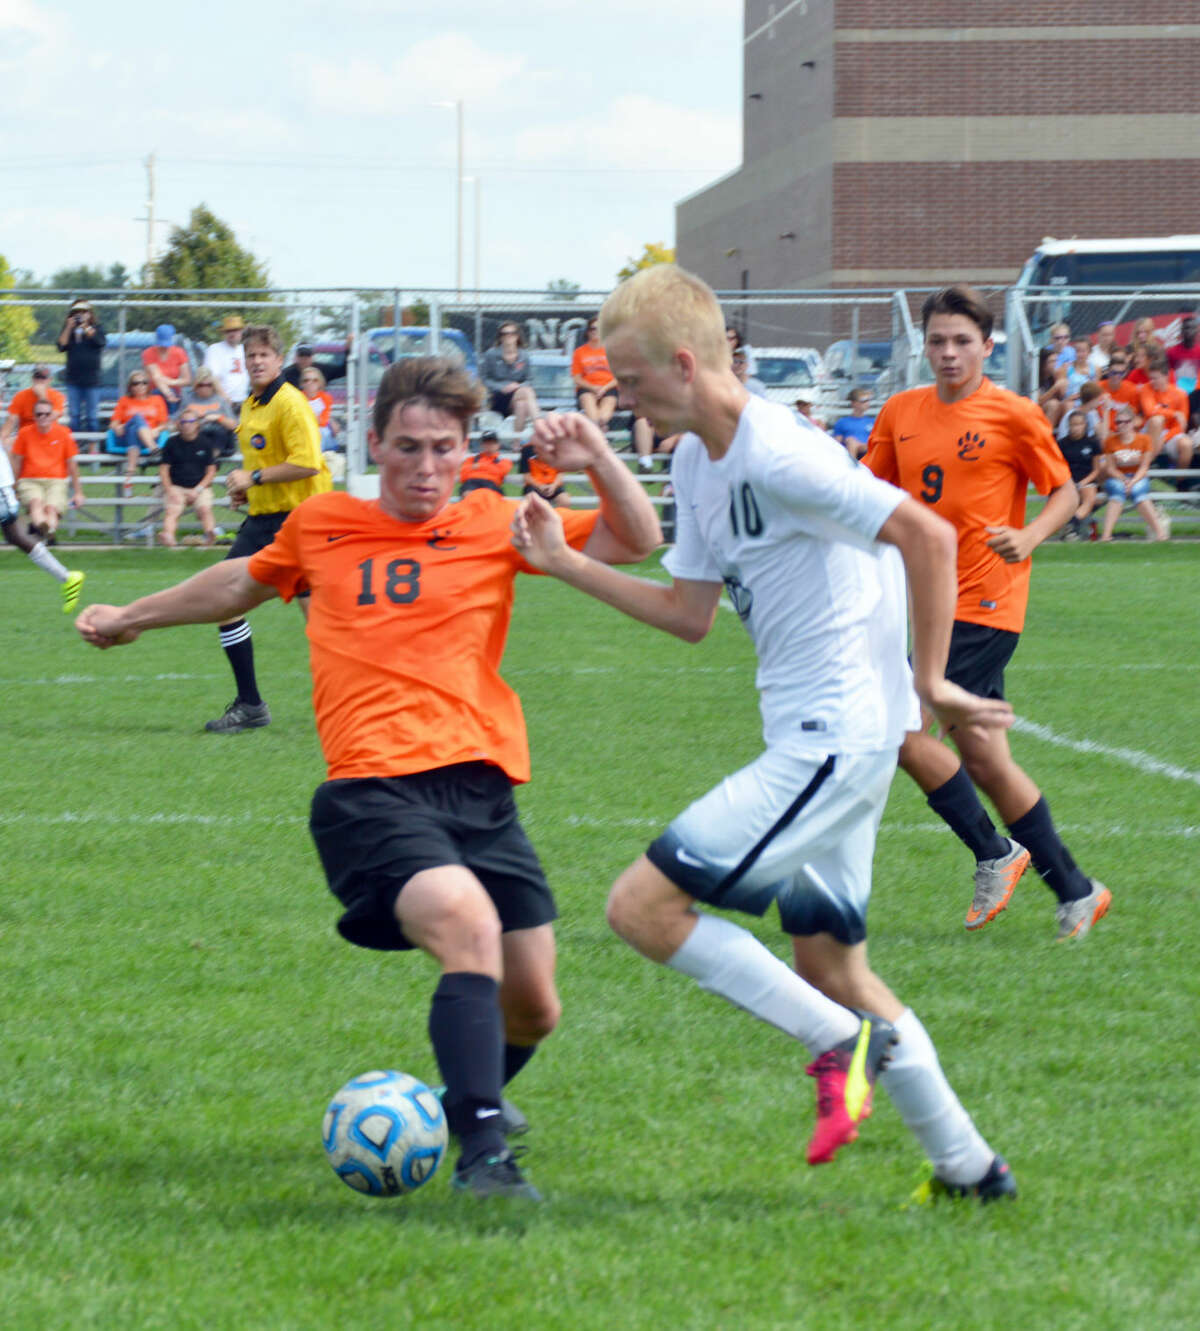 Edwardsville's John Wasmuth, left, tries to steal the ball near midfield.